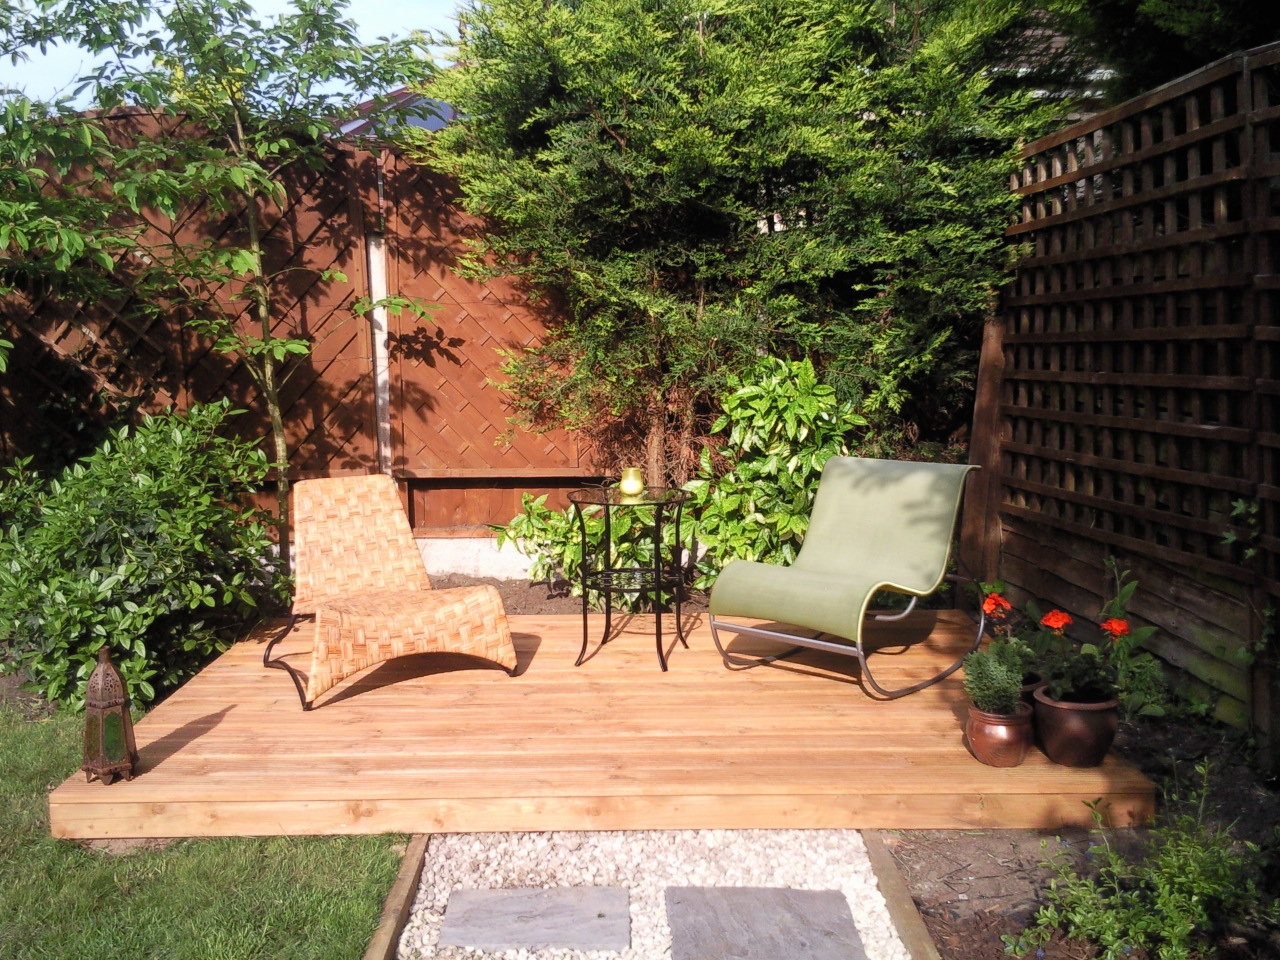 Landscape gardening south east london garden design for Garden decking designs pictures